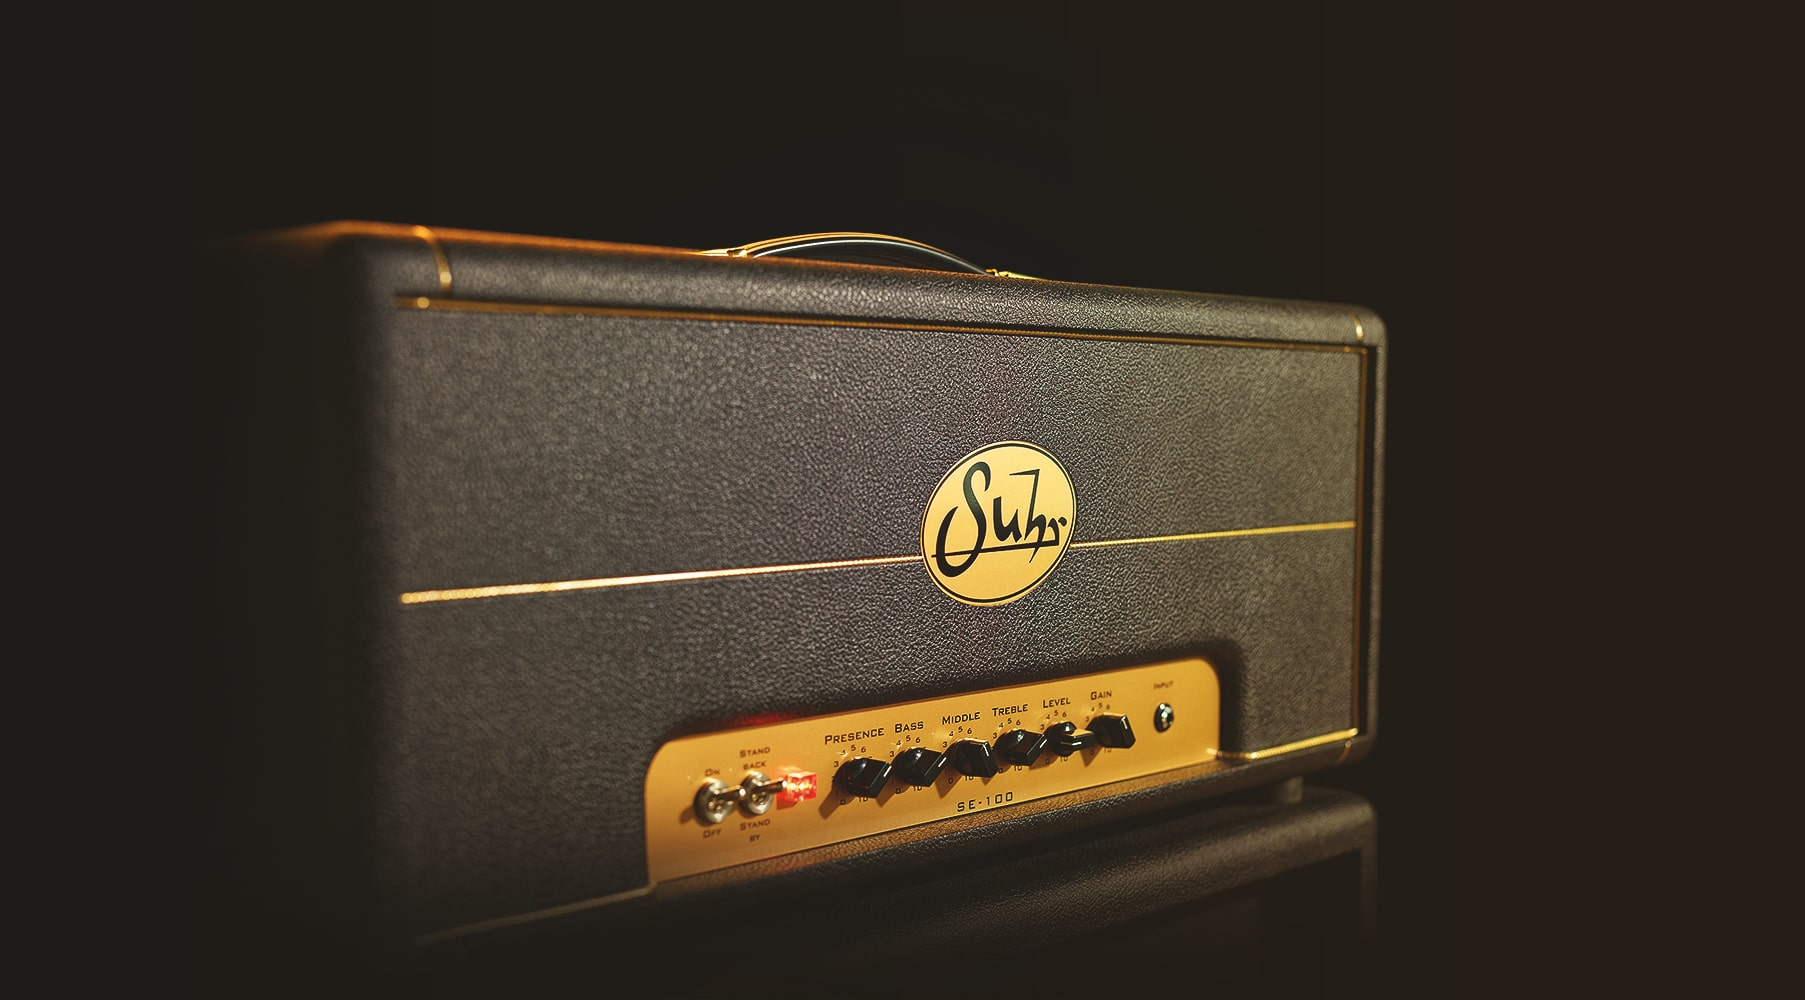 Suhr SE100 Amplifier